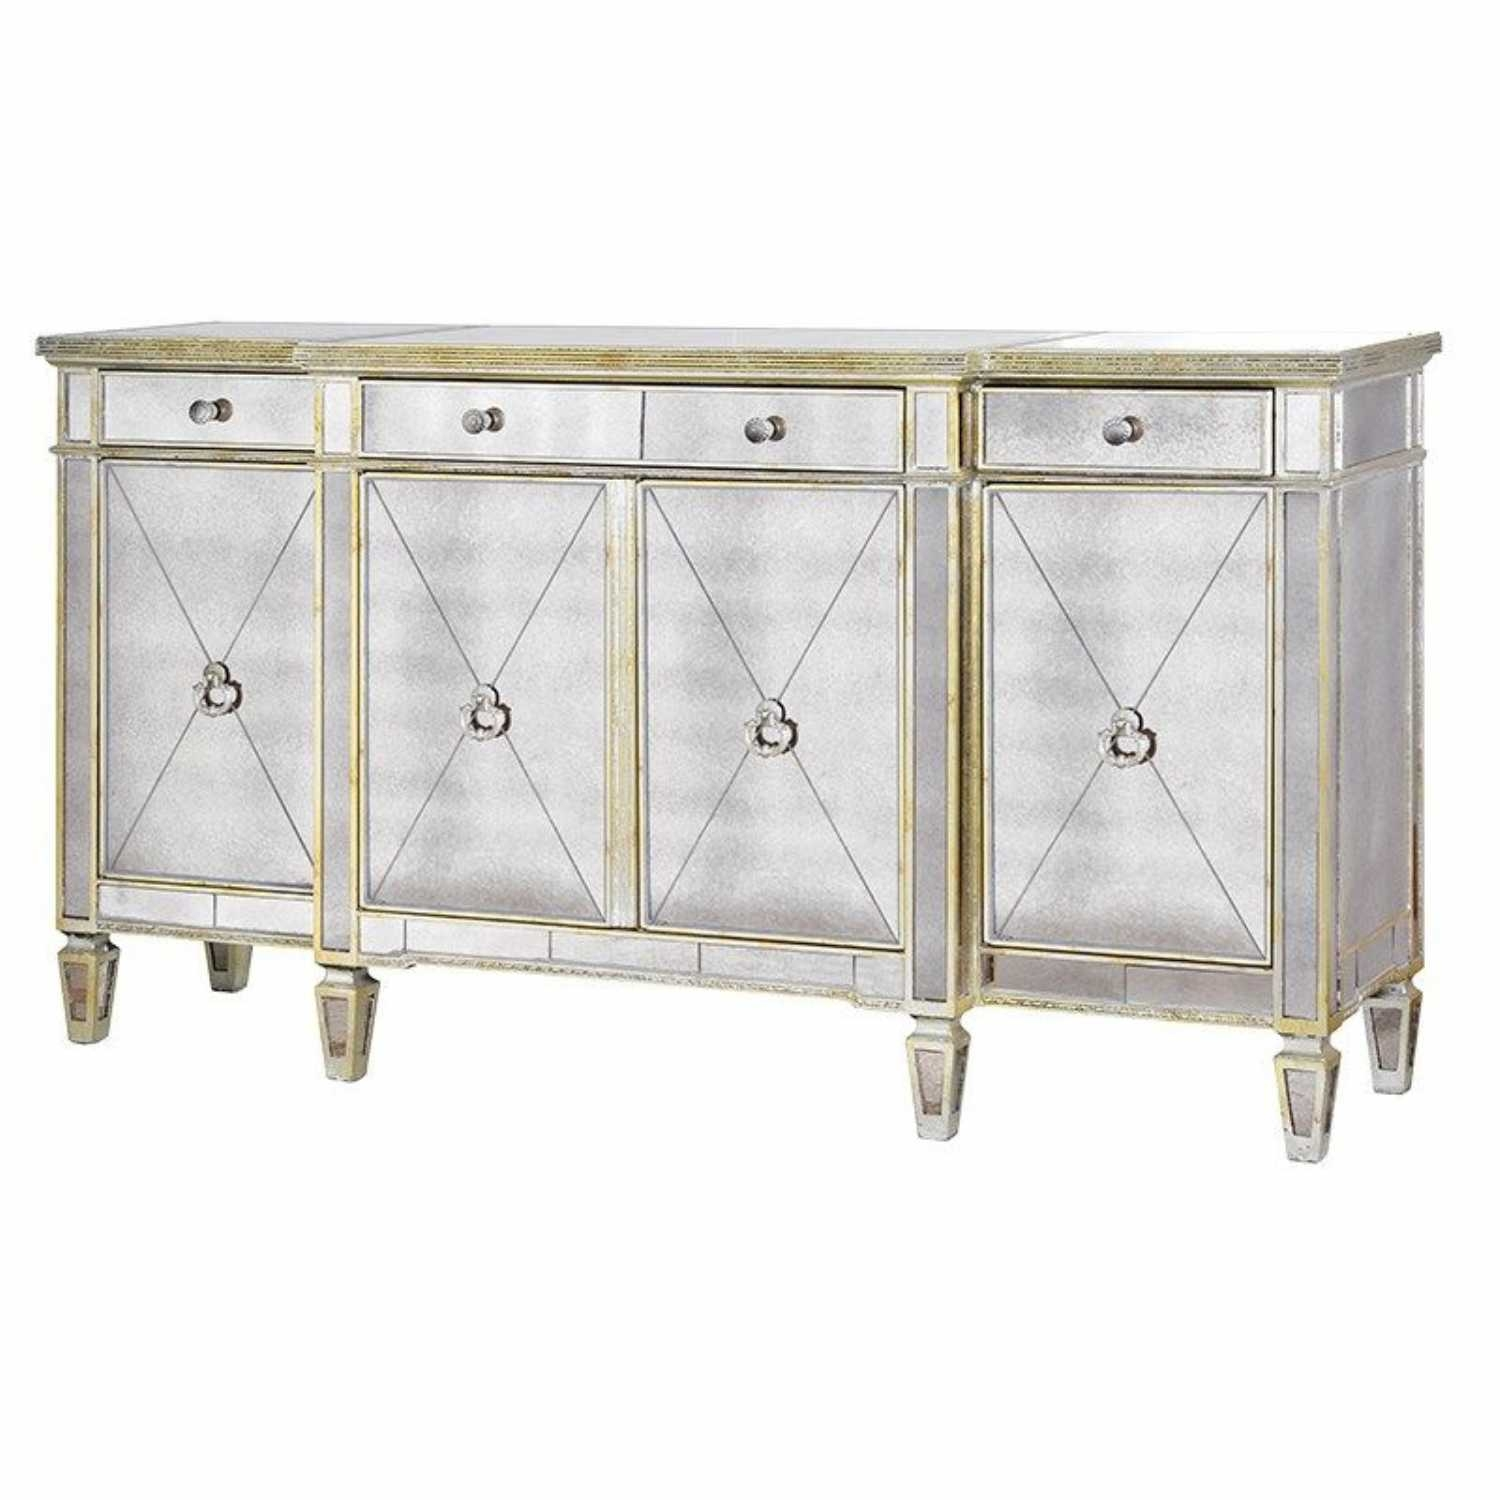 Large Antique Seville Venetian Mirrored Glass Sideboard 4 Door Intended For Venetian Mirrored Sideboard (Image 5 of 15)